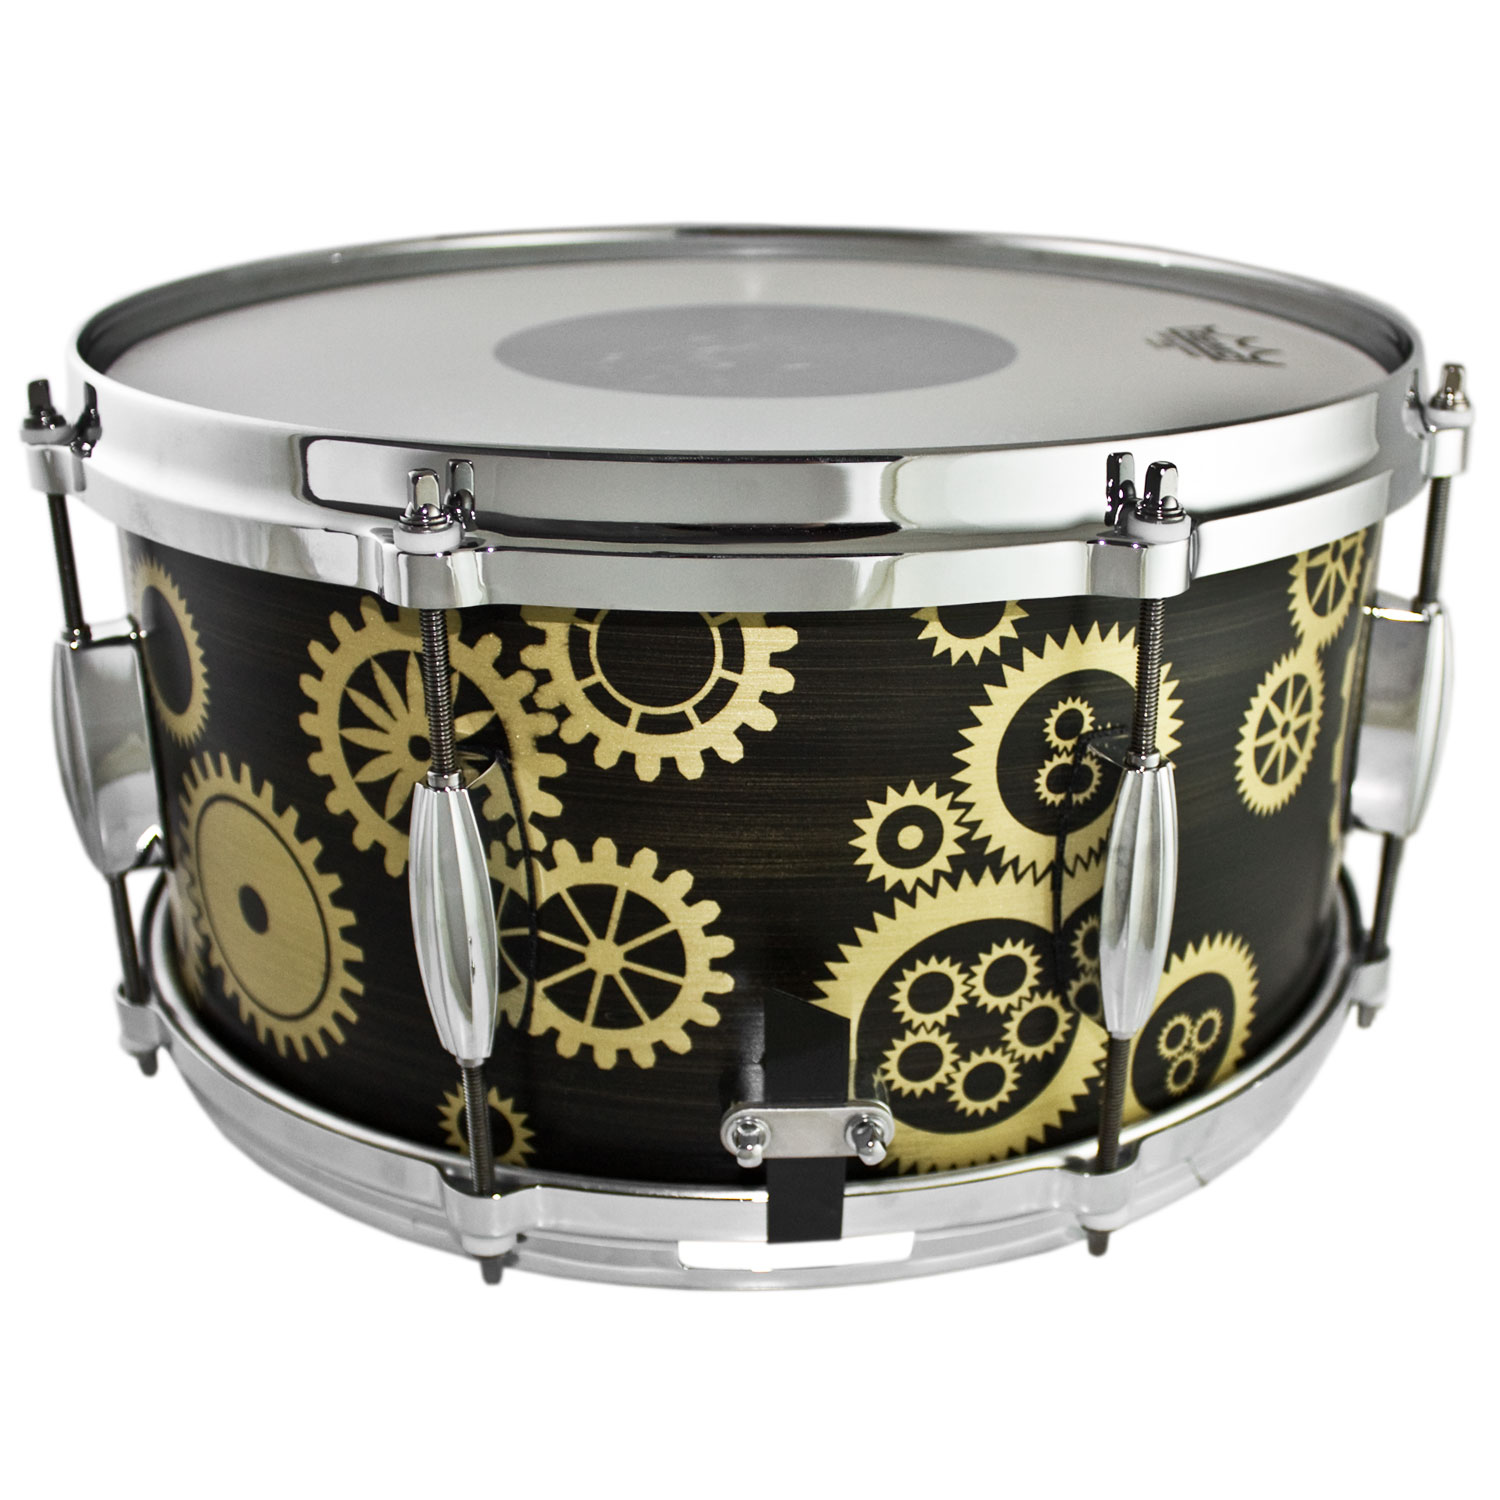 """Q Drum Co. 7"""" x 14"""" Brass Snare Drum with Gear Patina Design"""